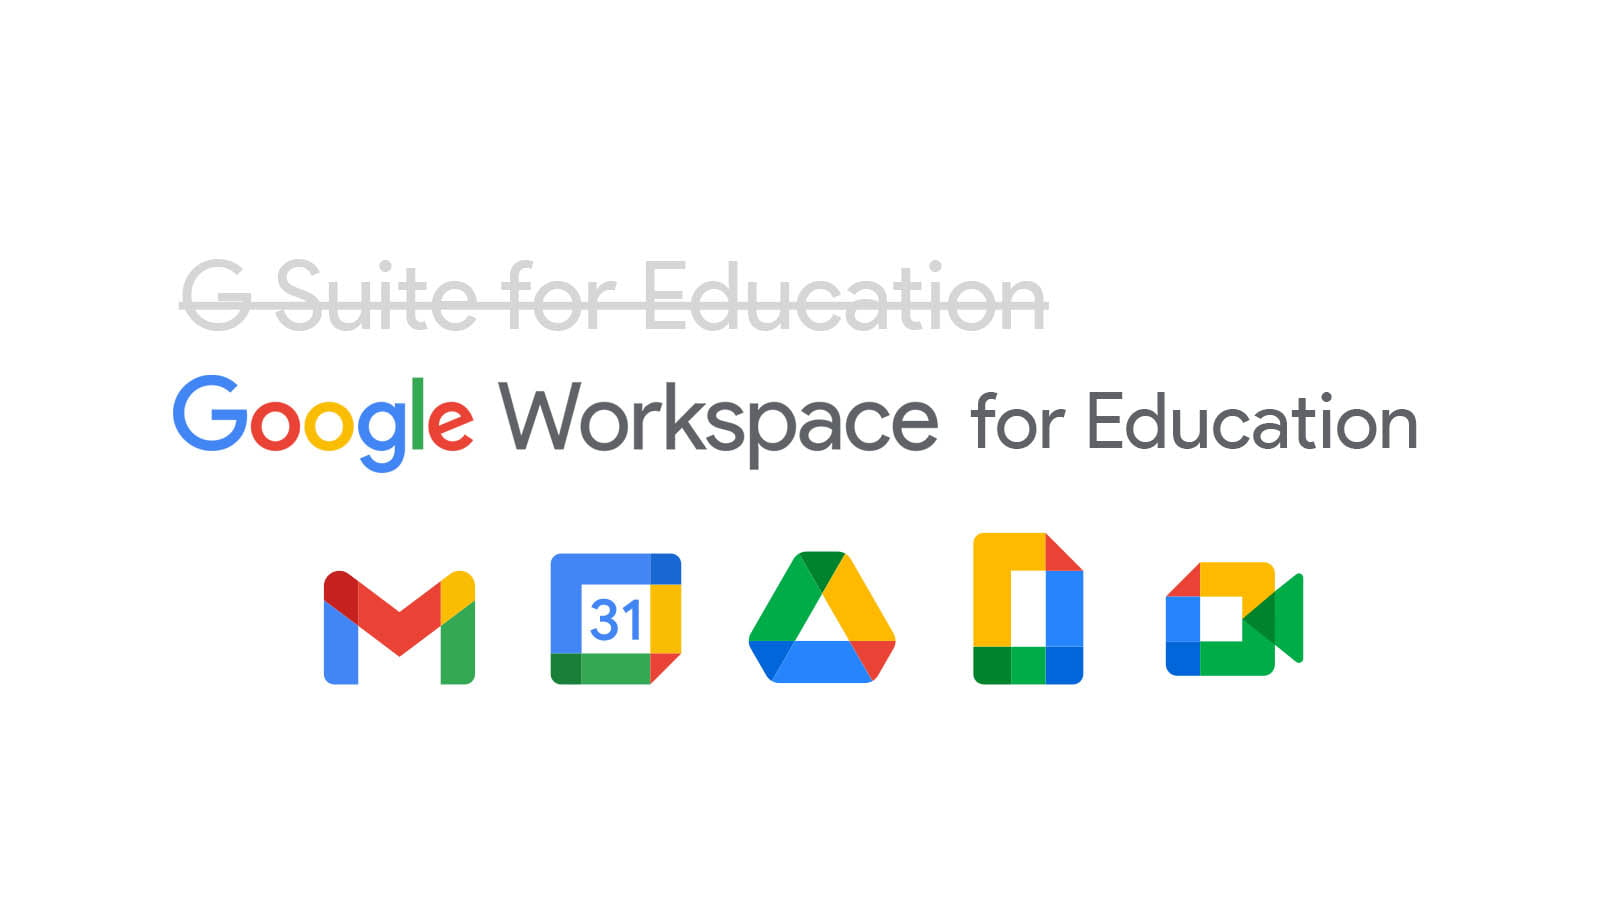 Google adds new features and extensions to Google Workspace for Education